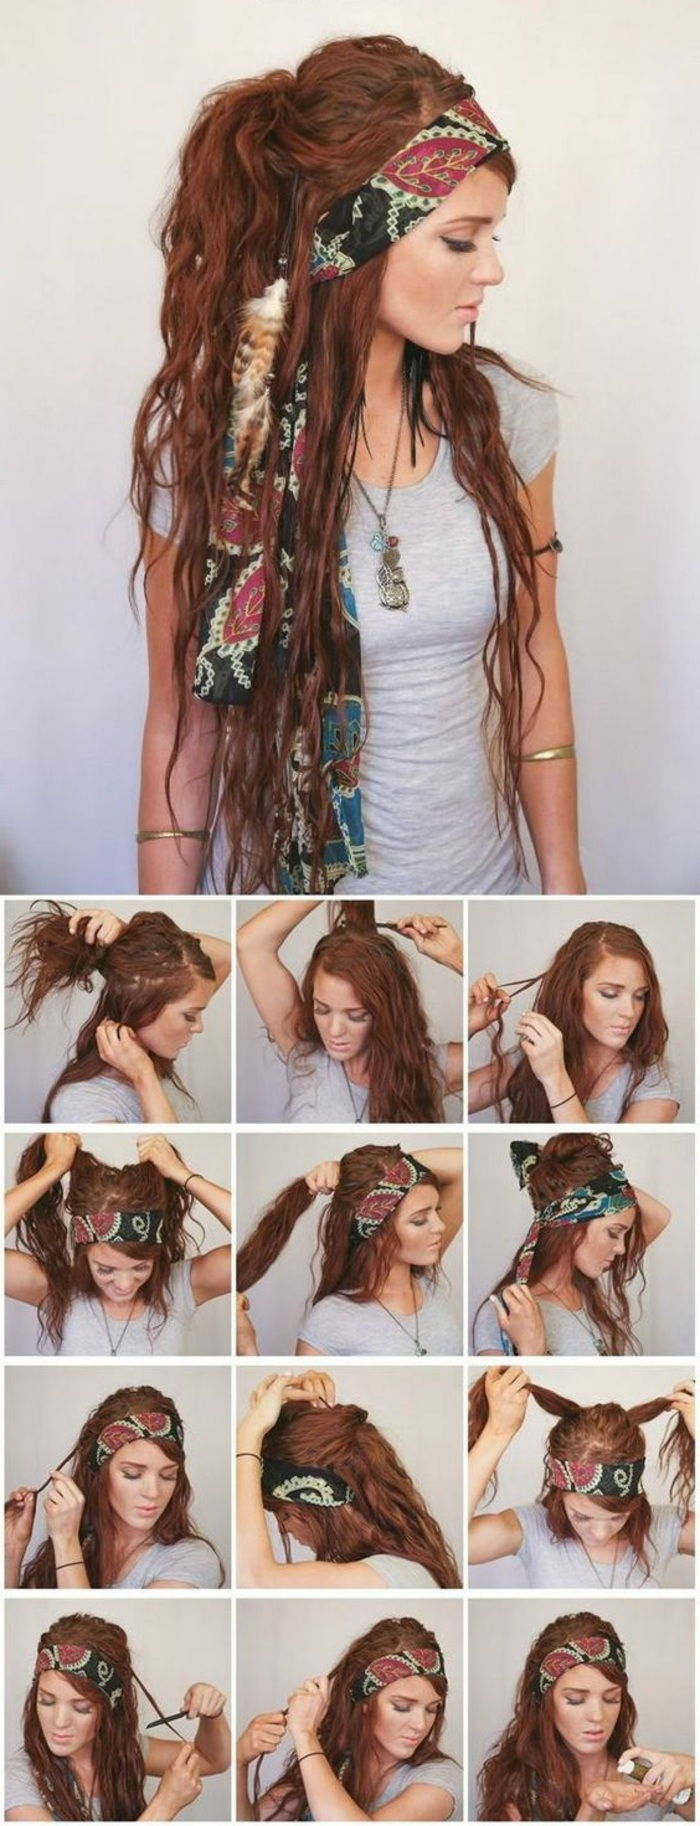 long, red hair, gray blouse, necklace, grunge hairstyle